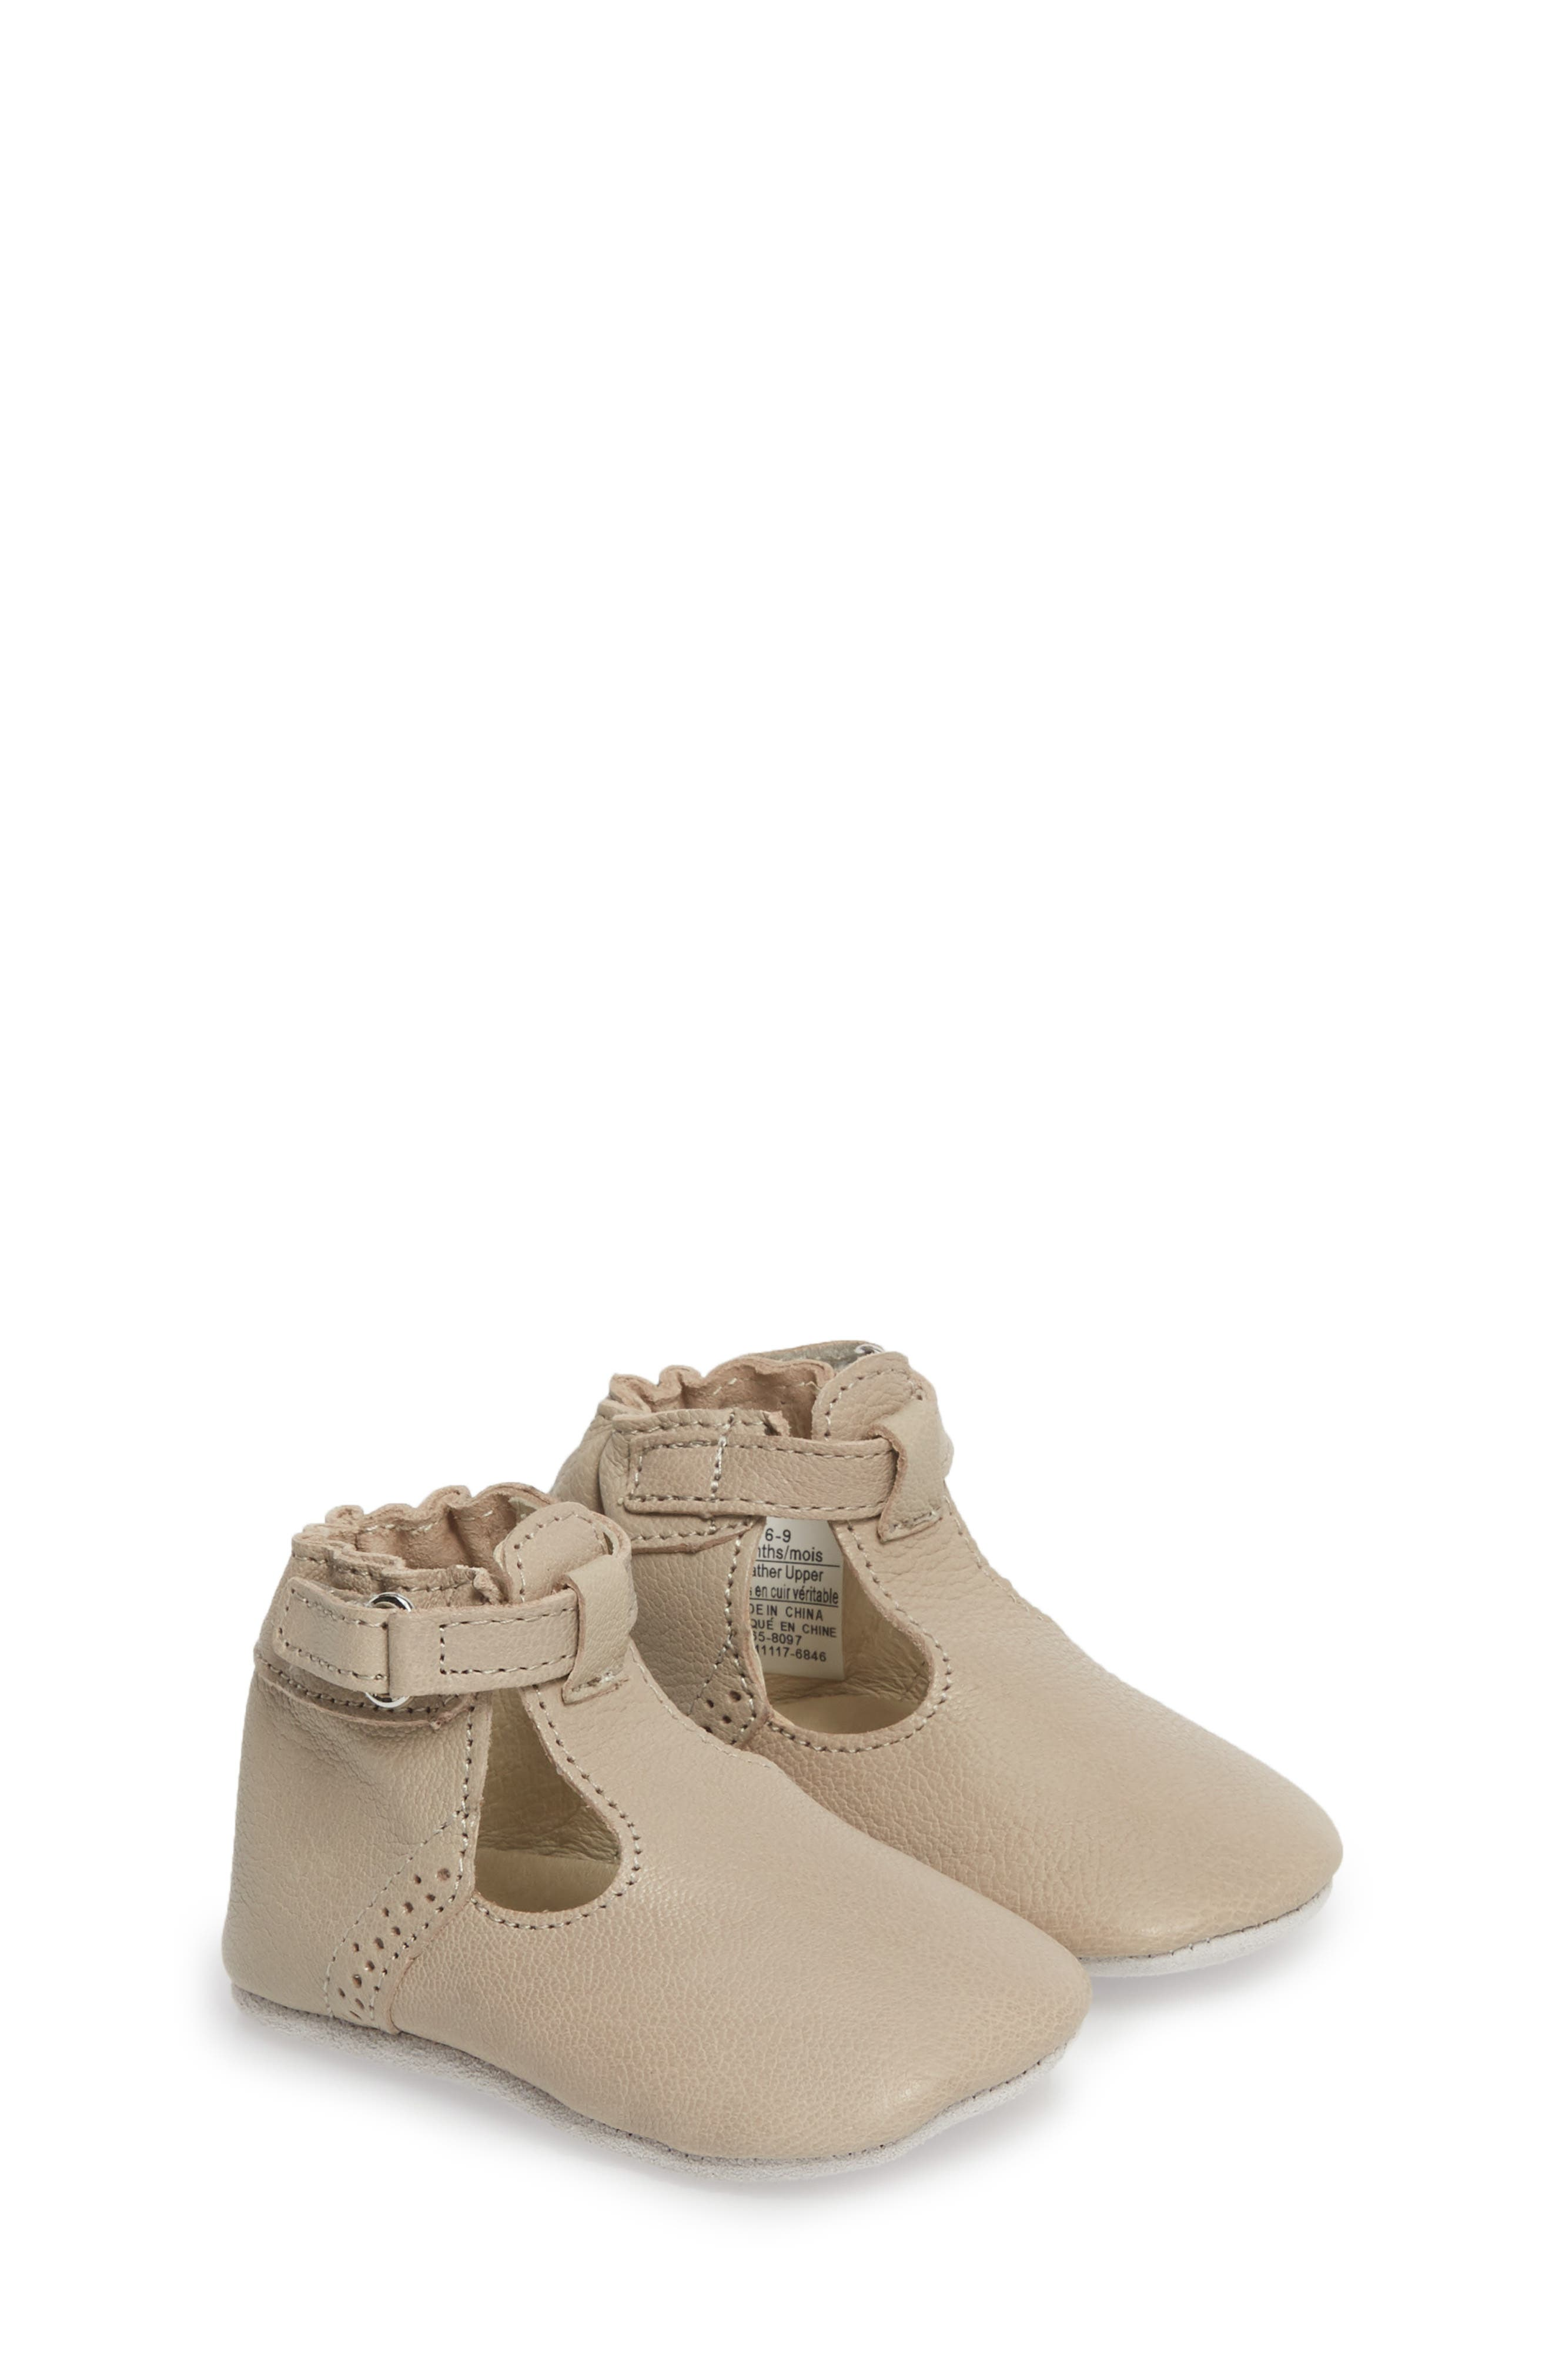 ROBEEZ<SUP>®</SUP>, Penny T-Strap Mary Jane Crib Shoe, Main thumbnail 1, color, TAUPE